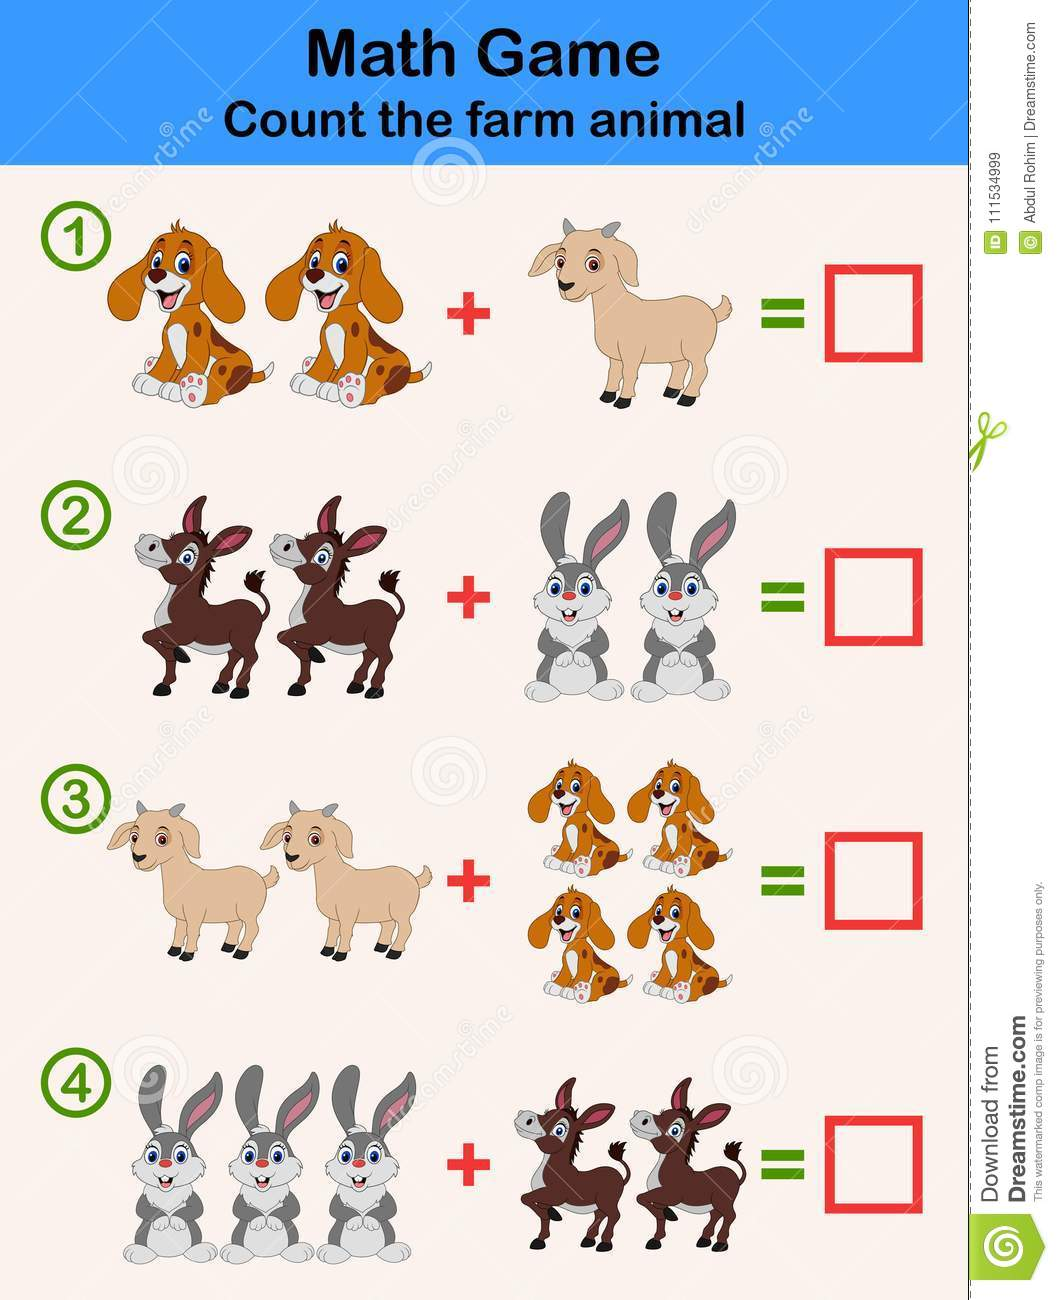 Education Counting Game Of Farm Animals For Preschool